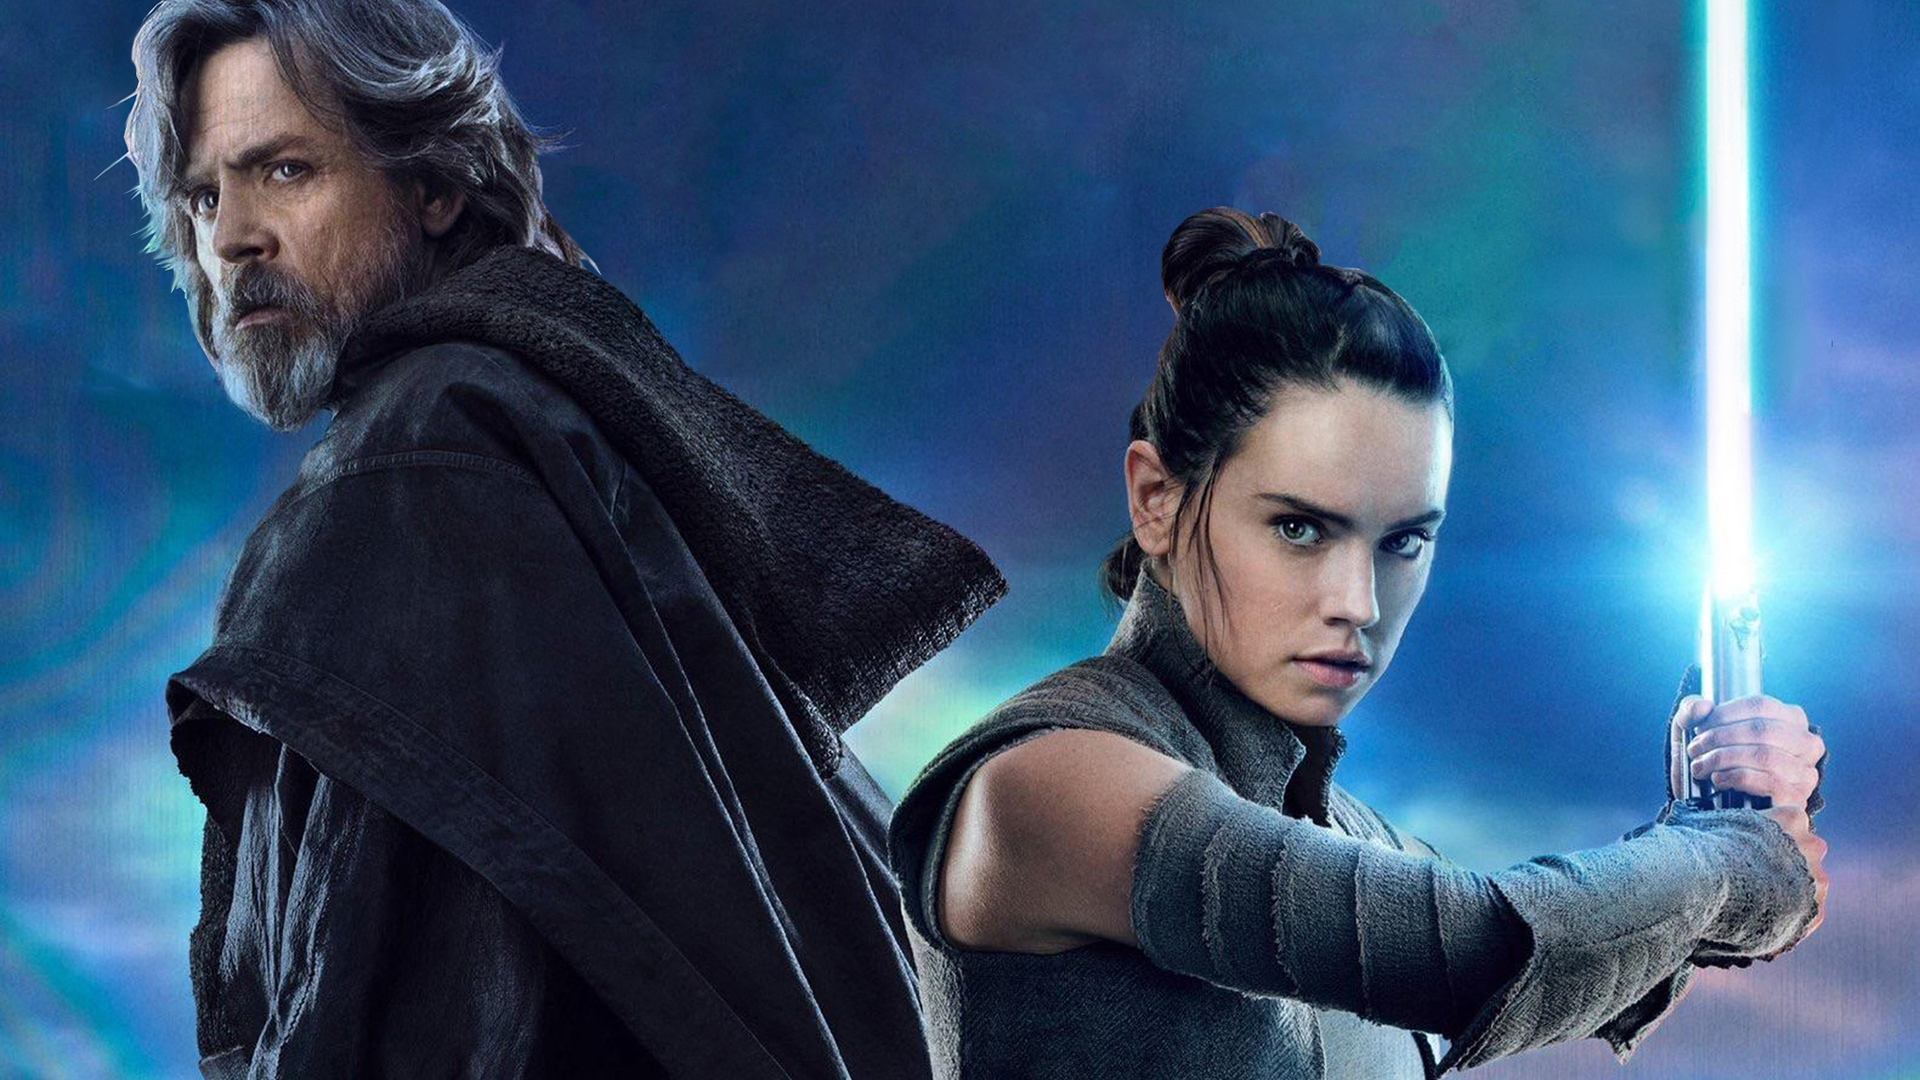 The Last Jedi Wallpaper 1920x1080 Posted By Sarah Anderson